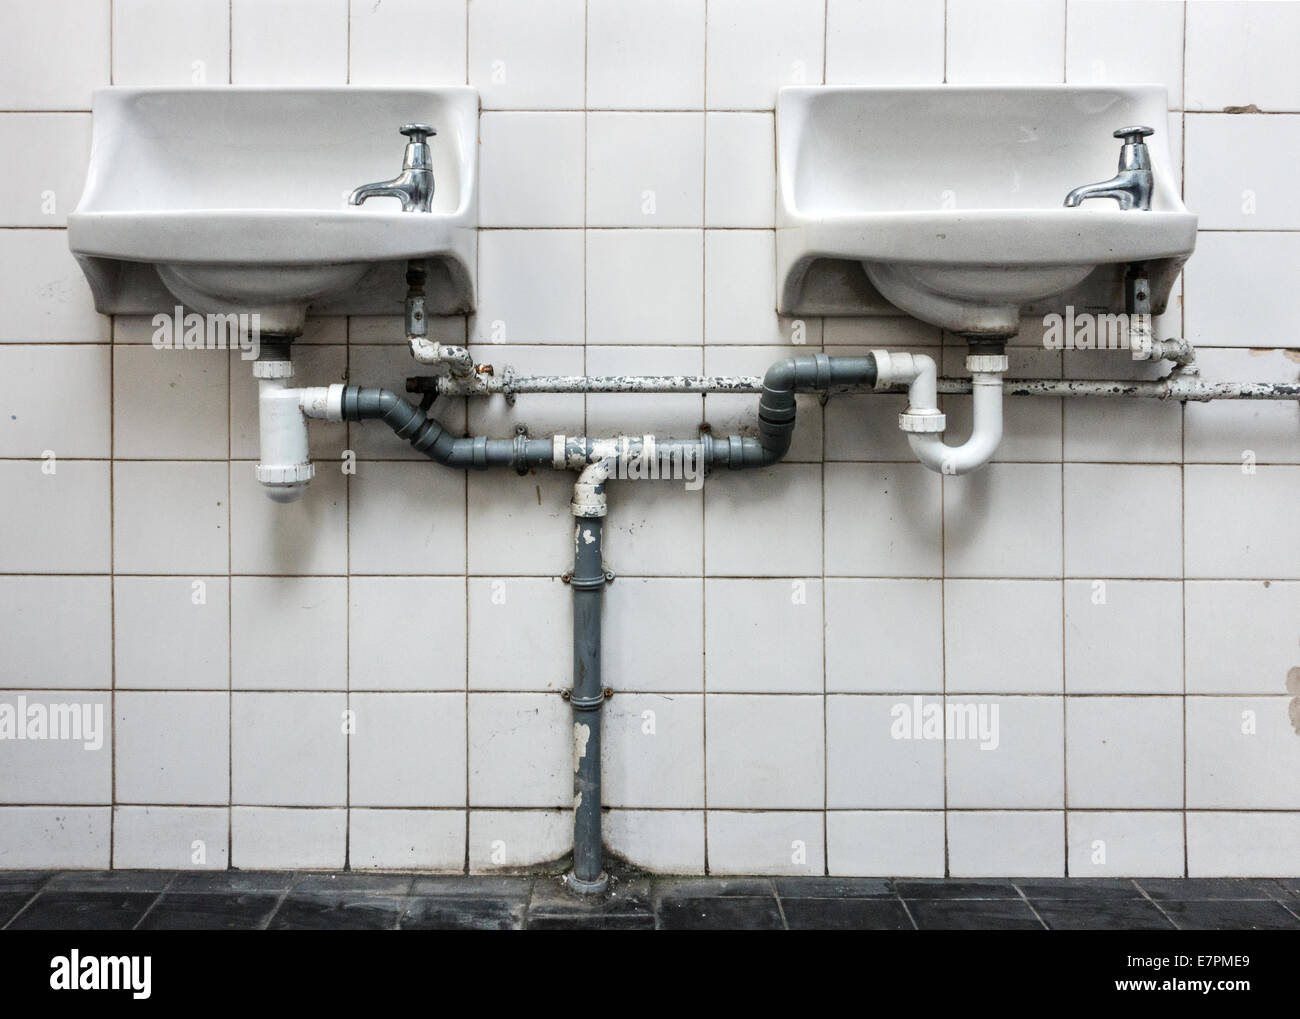 Twin hand washing sinks and plumbing in an Edwardian Grade II listed lavatory building in central Bristol UK - Stock Image